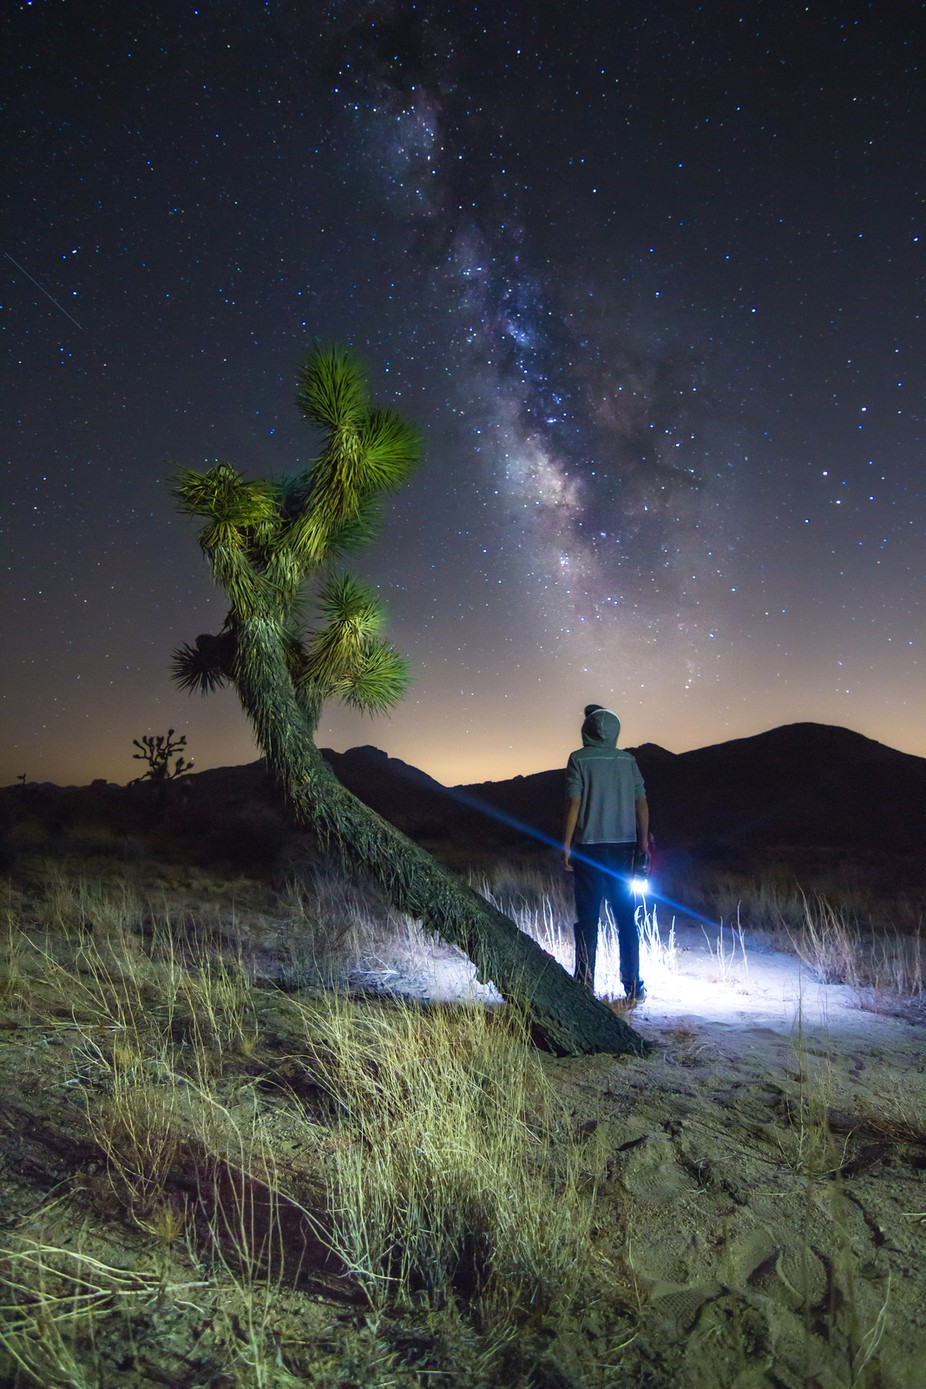 Take Me To The Upside Down by s_cavazos - Night Wonders Photo Contest